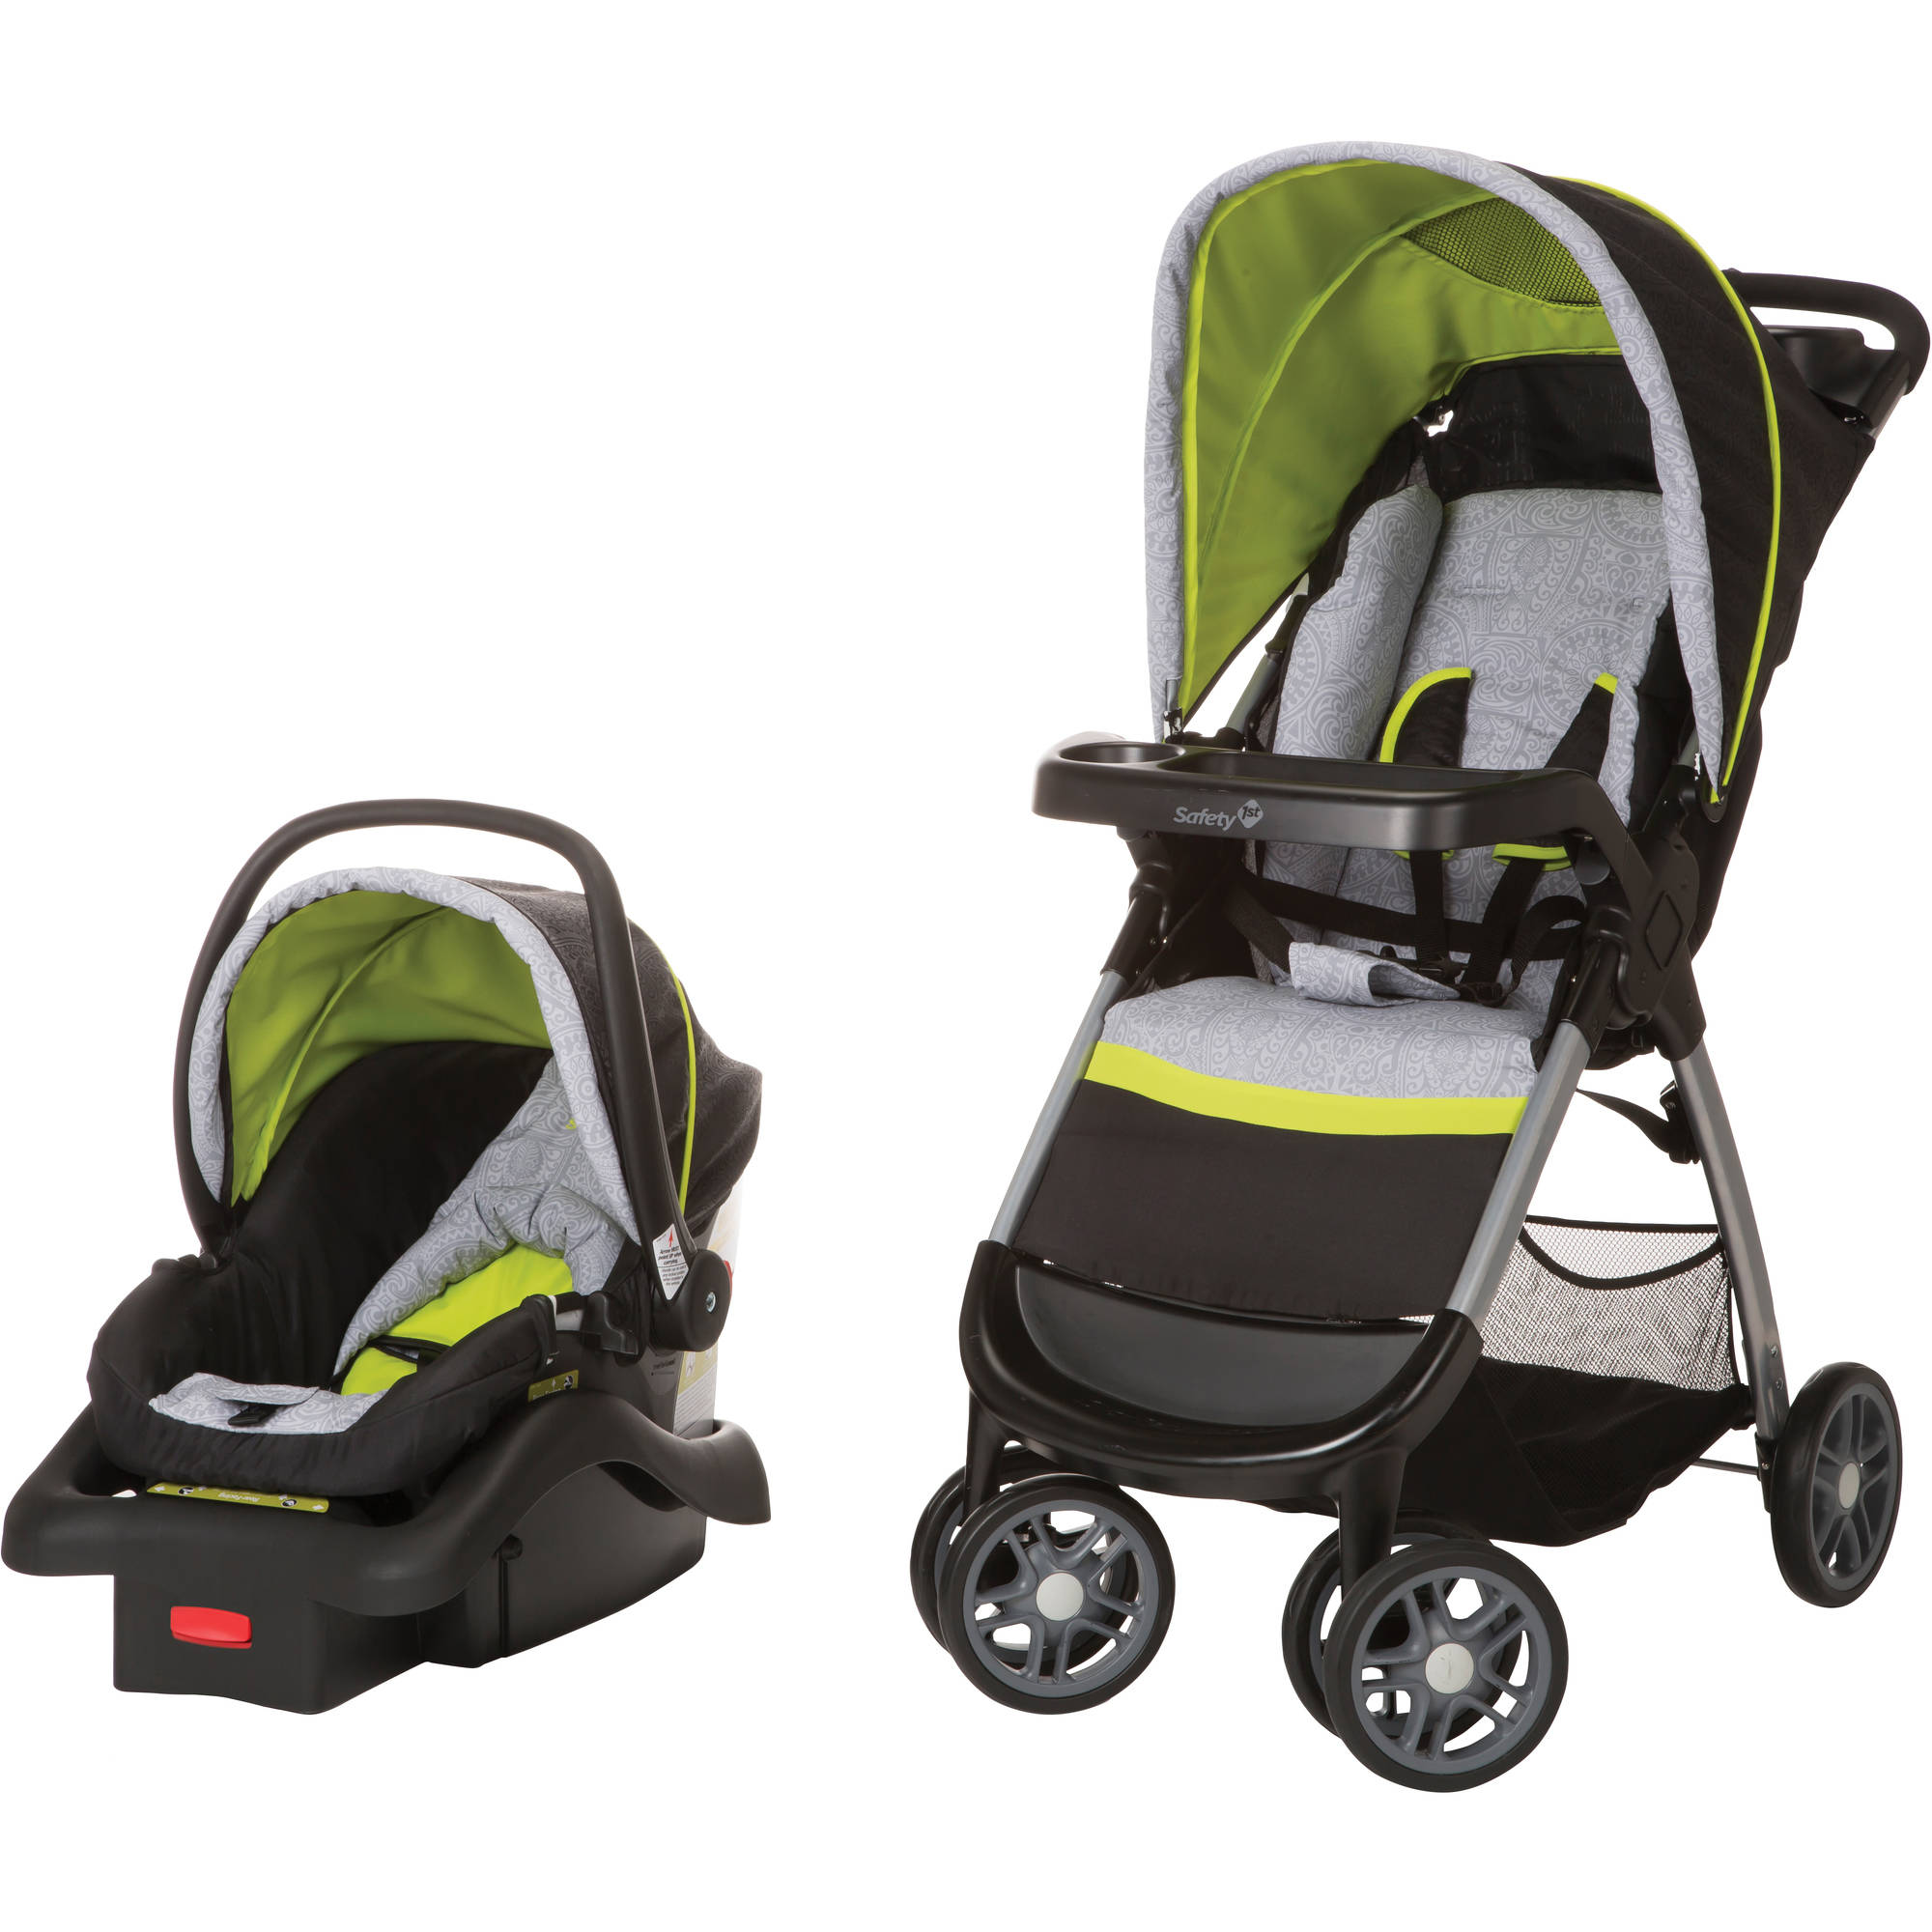 Safety 1st Amble Quad Travel System, Polynesian